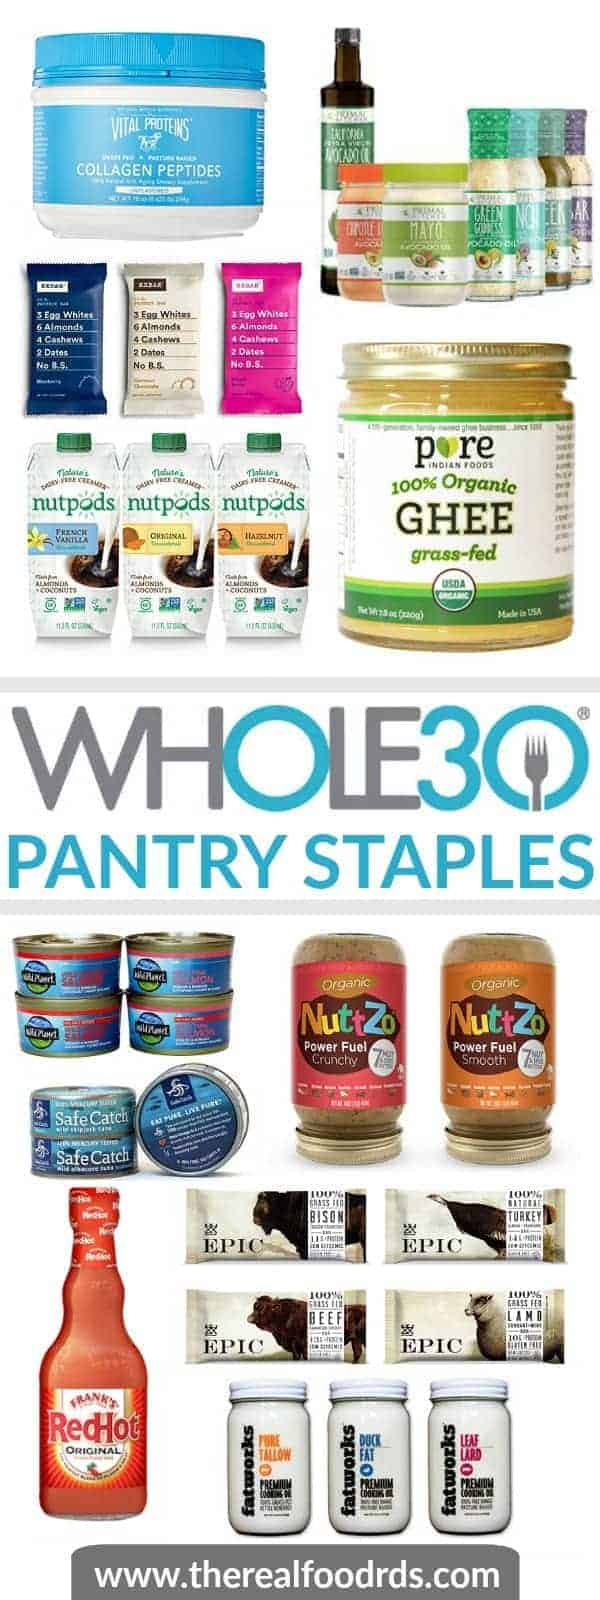 Whole30 Pantry Staples | whole30 prep | how to prepare for a whole30 | whole30 must haves | what to buy for a whole30 || The Real Food Dietitians #whole30prep #whole30staples #whole30pantry